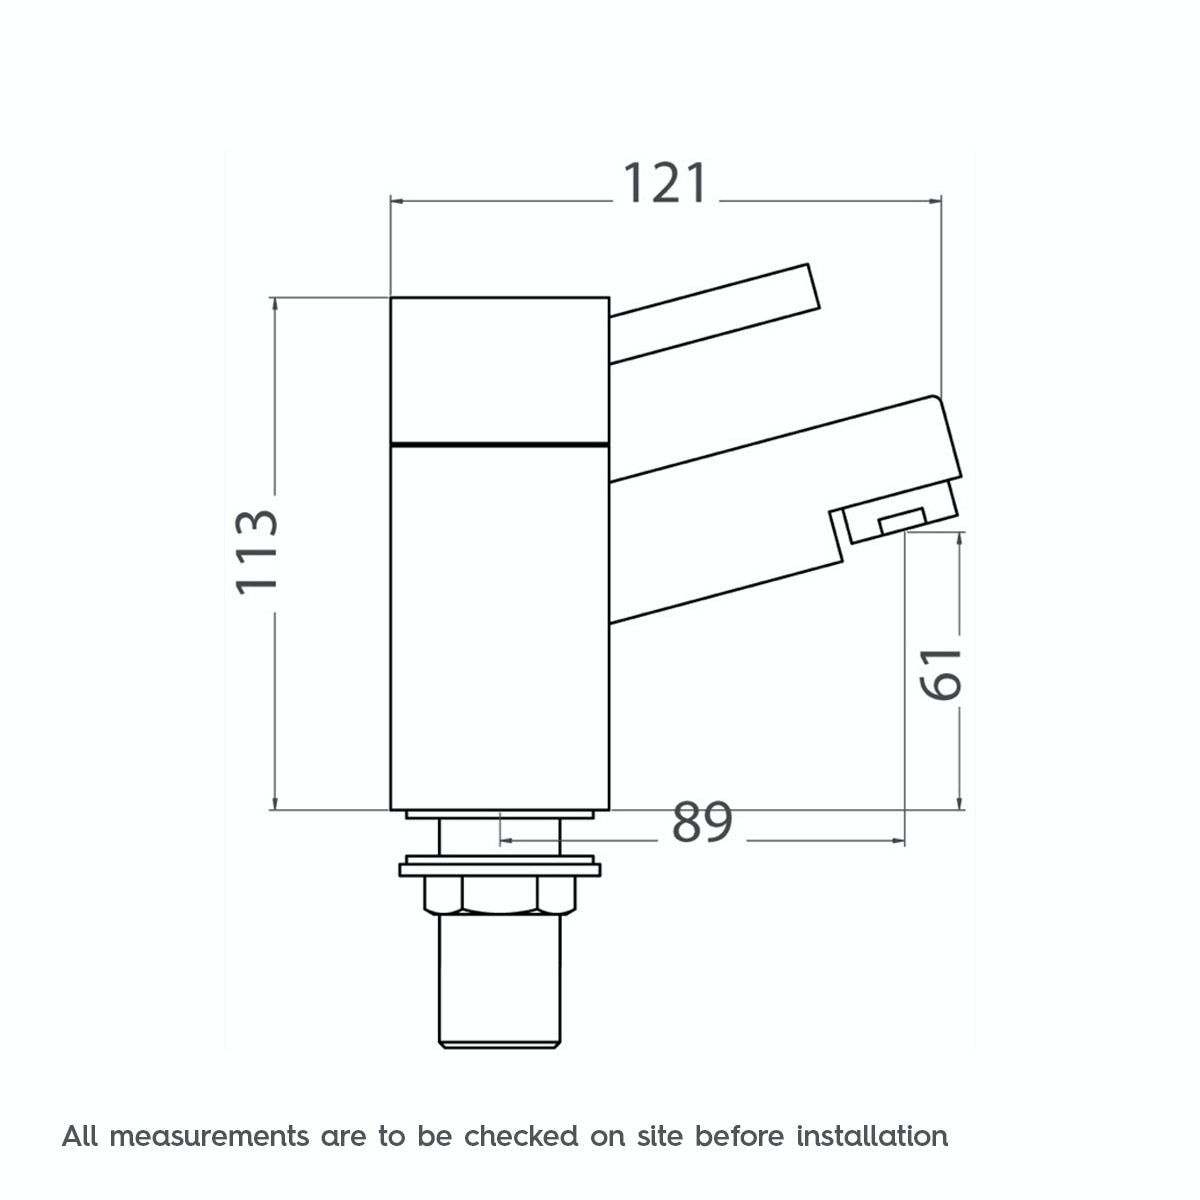 Dimensions for Orchard Wharfe bath pillar taps